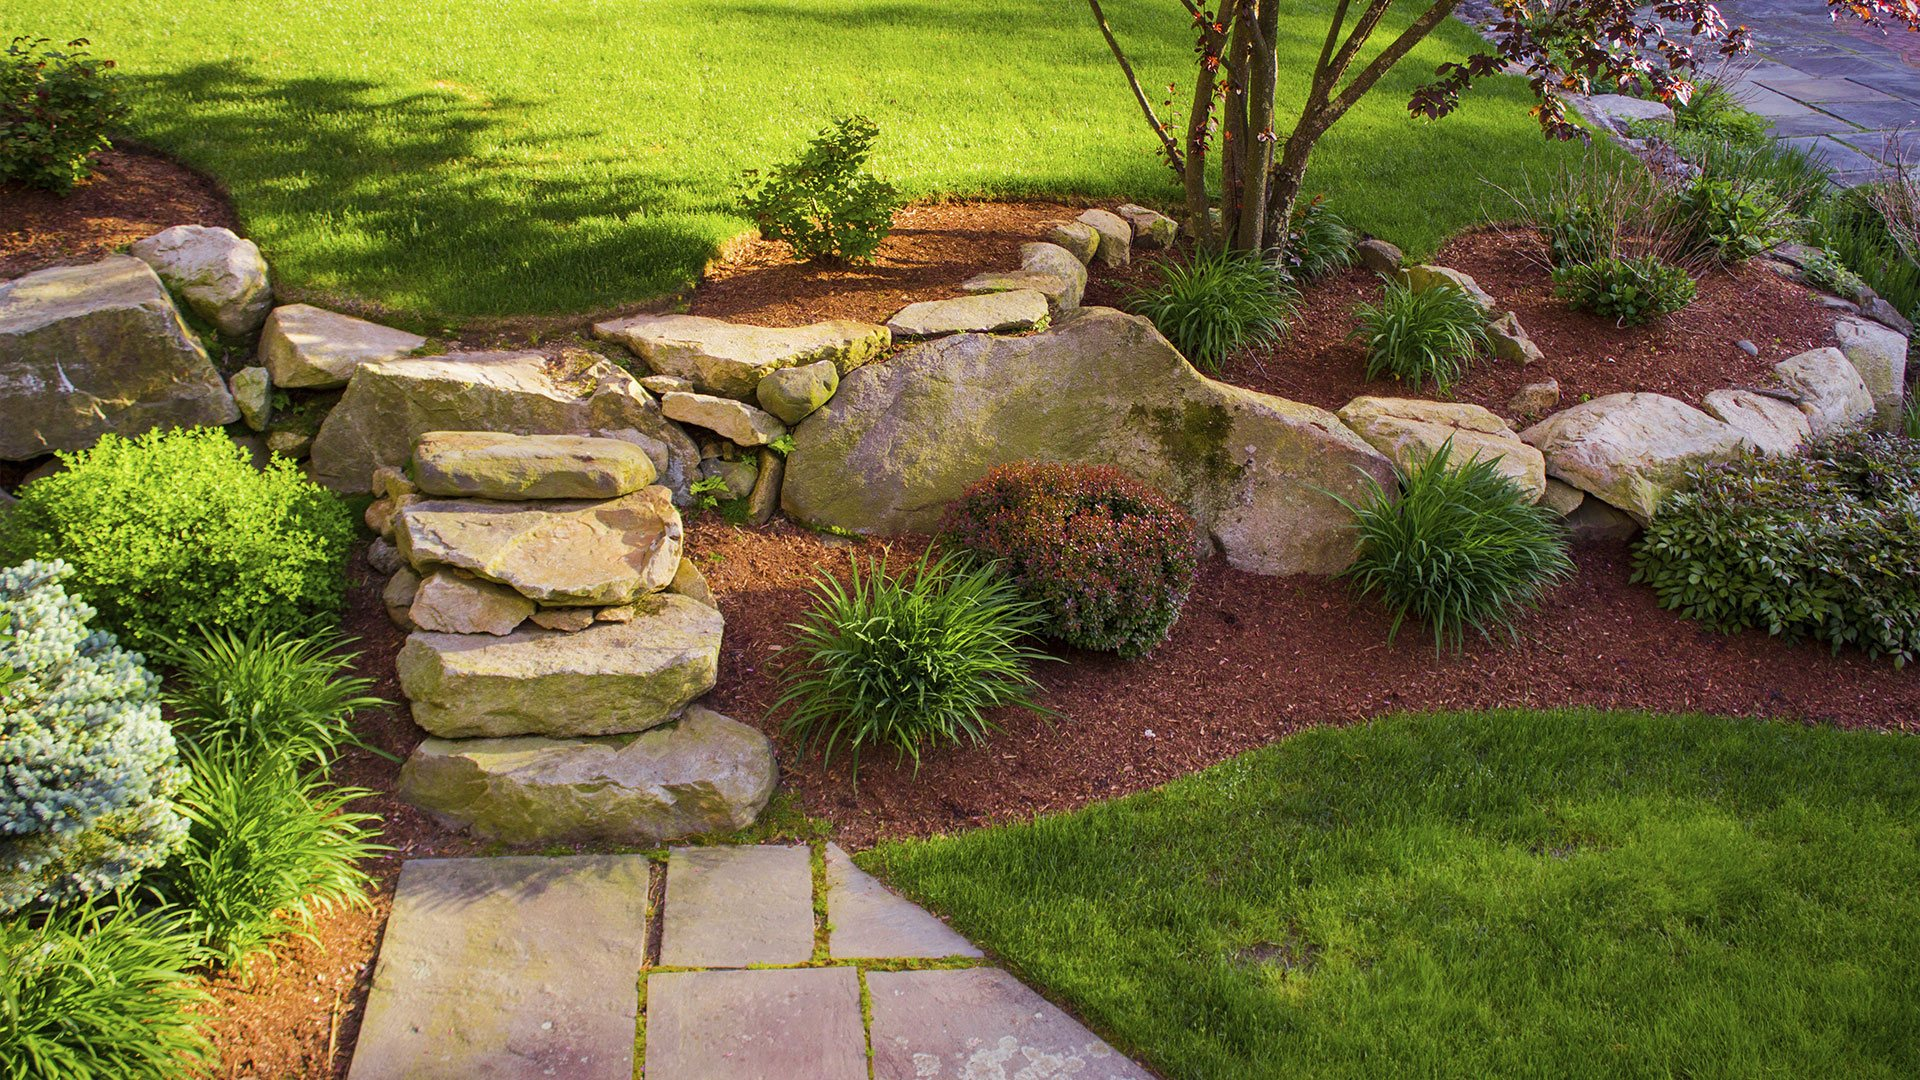 Cherry Oak Landscaping Lawn Care, Hardscapes and Retaining Walls slide 3